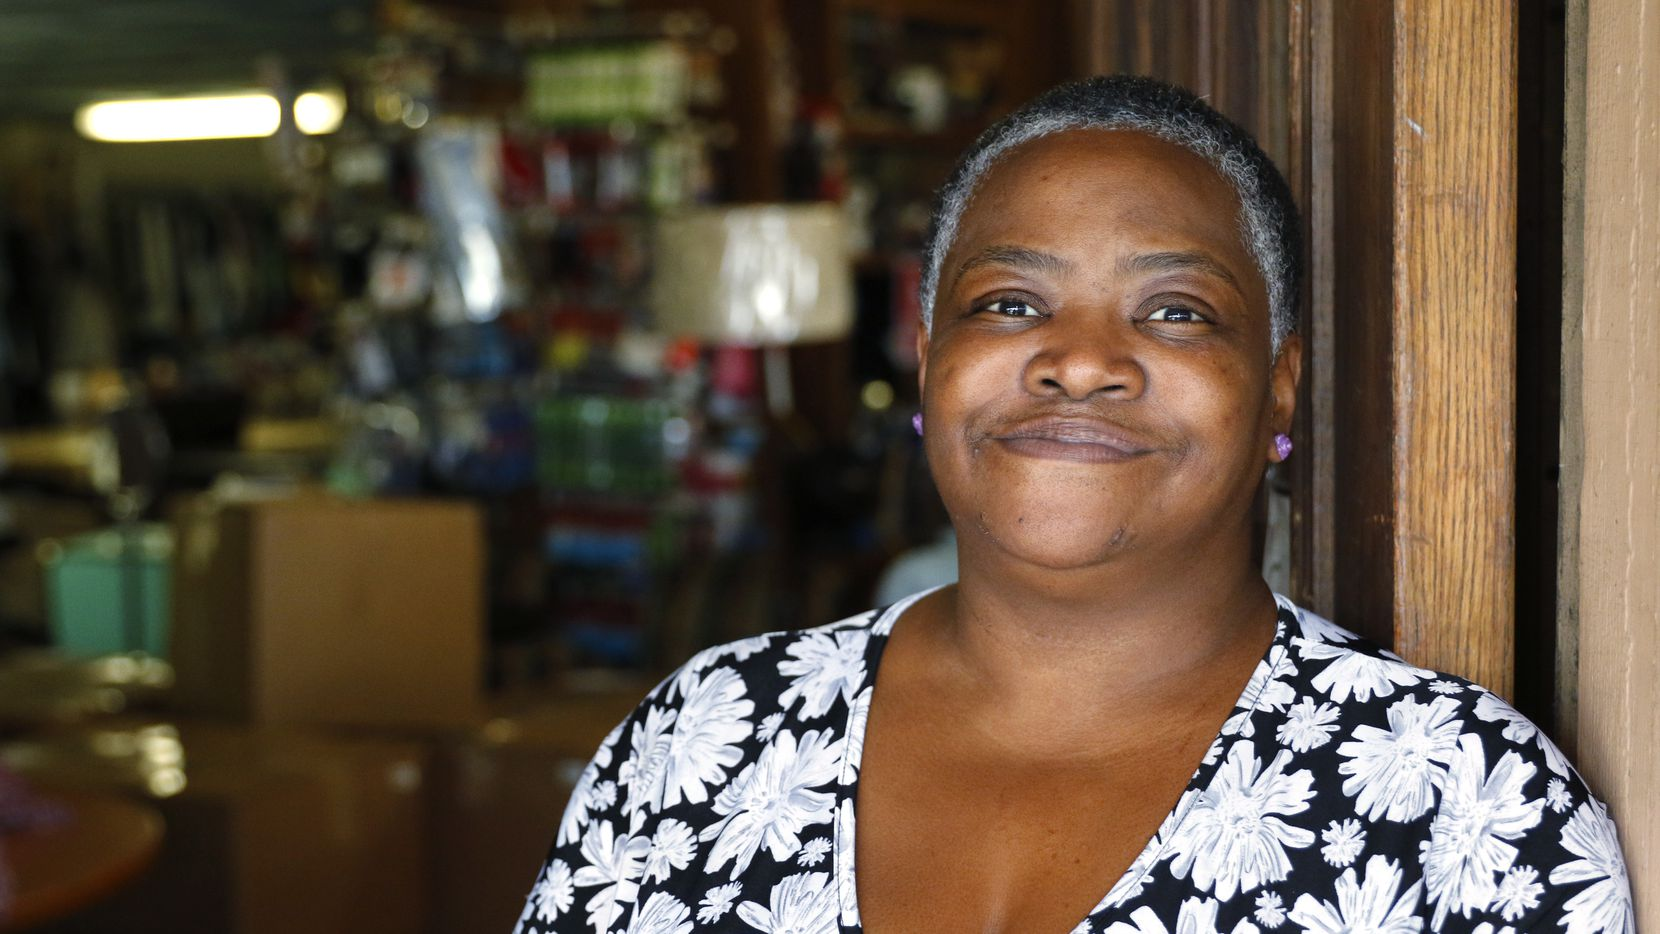 Angela Jessie  spent two months in the Dallas County jail on a shoplifting charge.